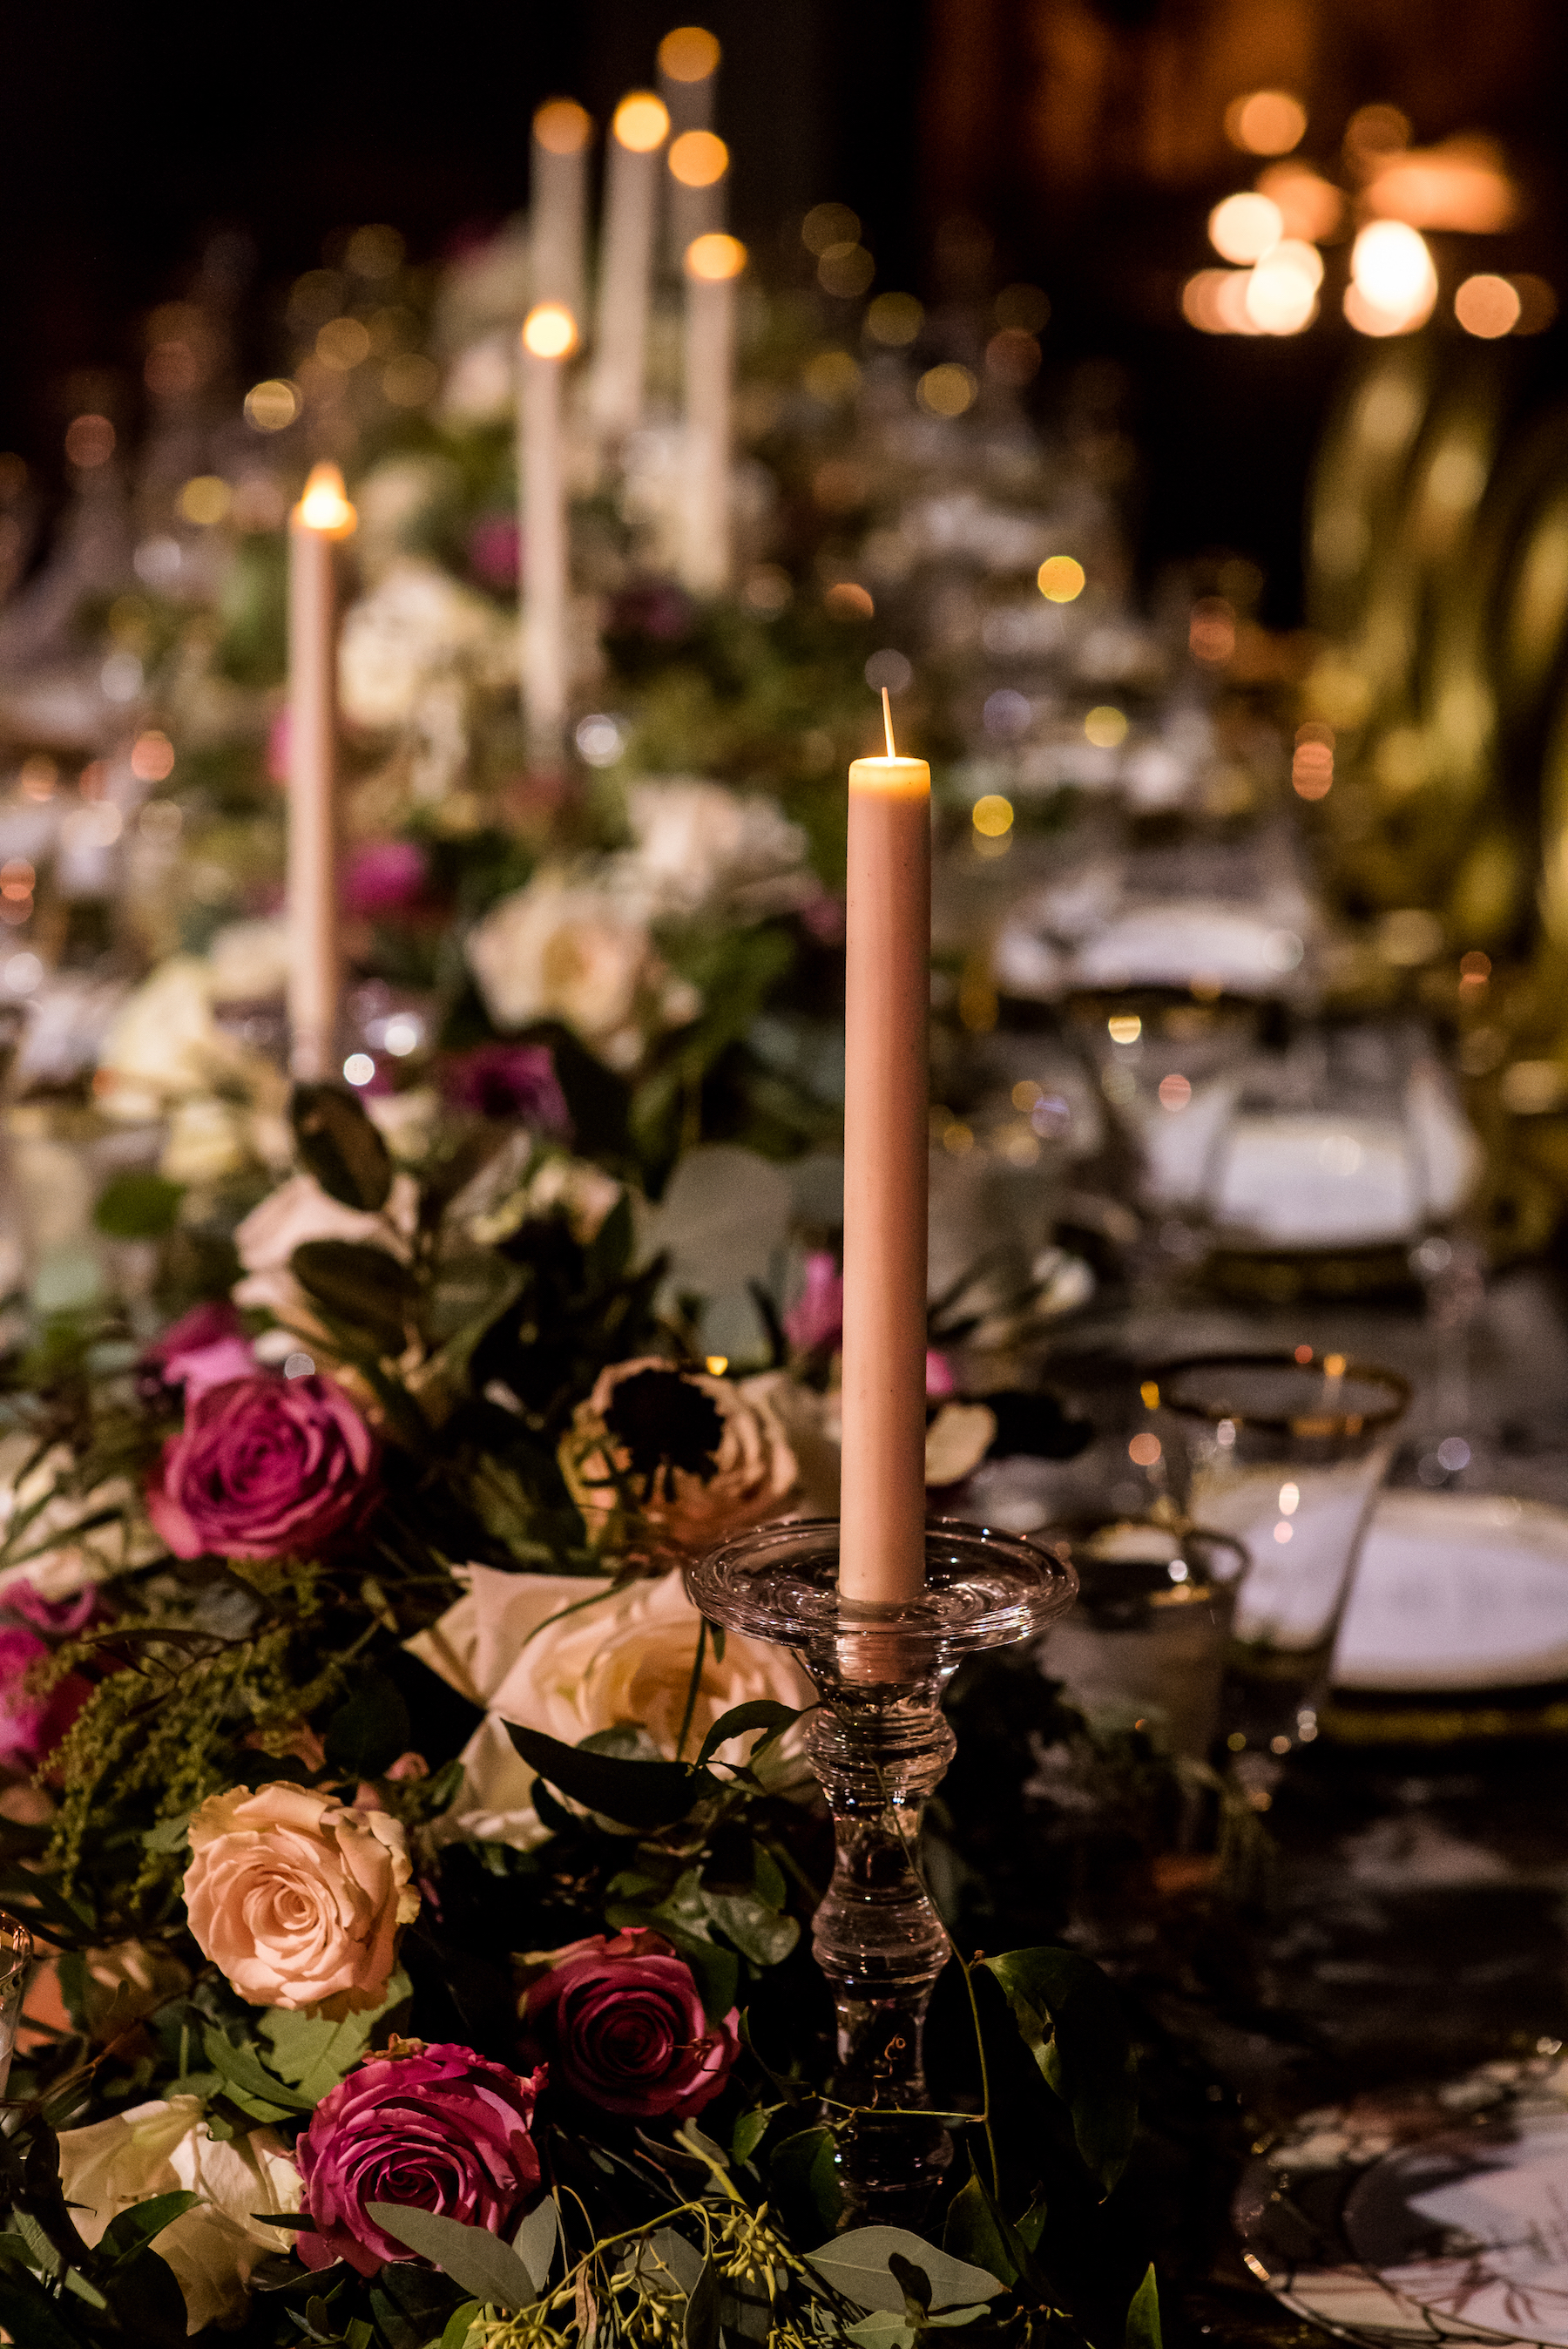 Devin-Dan-Winter-Wedding-Boston- Wedding-Destination-Wedding-Wedding-Planner-Nicole-Simeral-Harvard-Club-Decor-Flowers-Candles-Candlelight-Luxury-wedding-burgundy-purple-gold-faux-candles